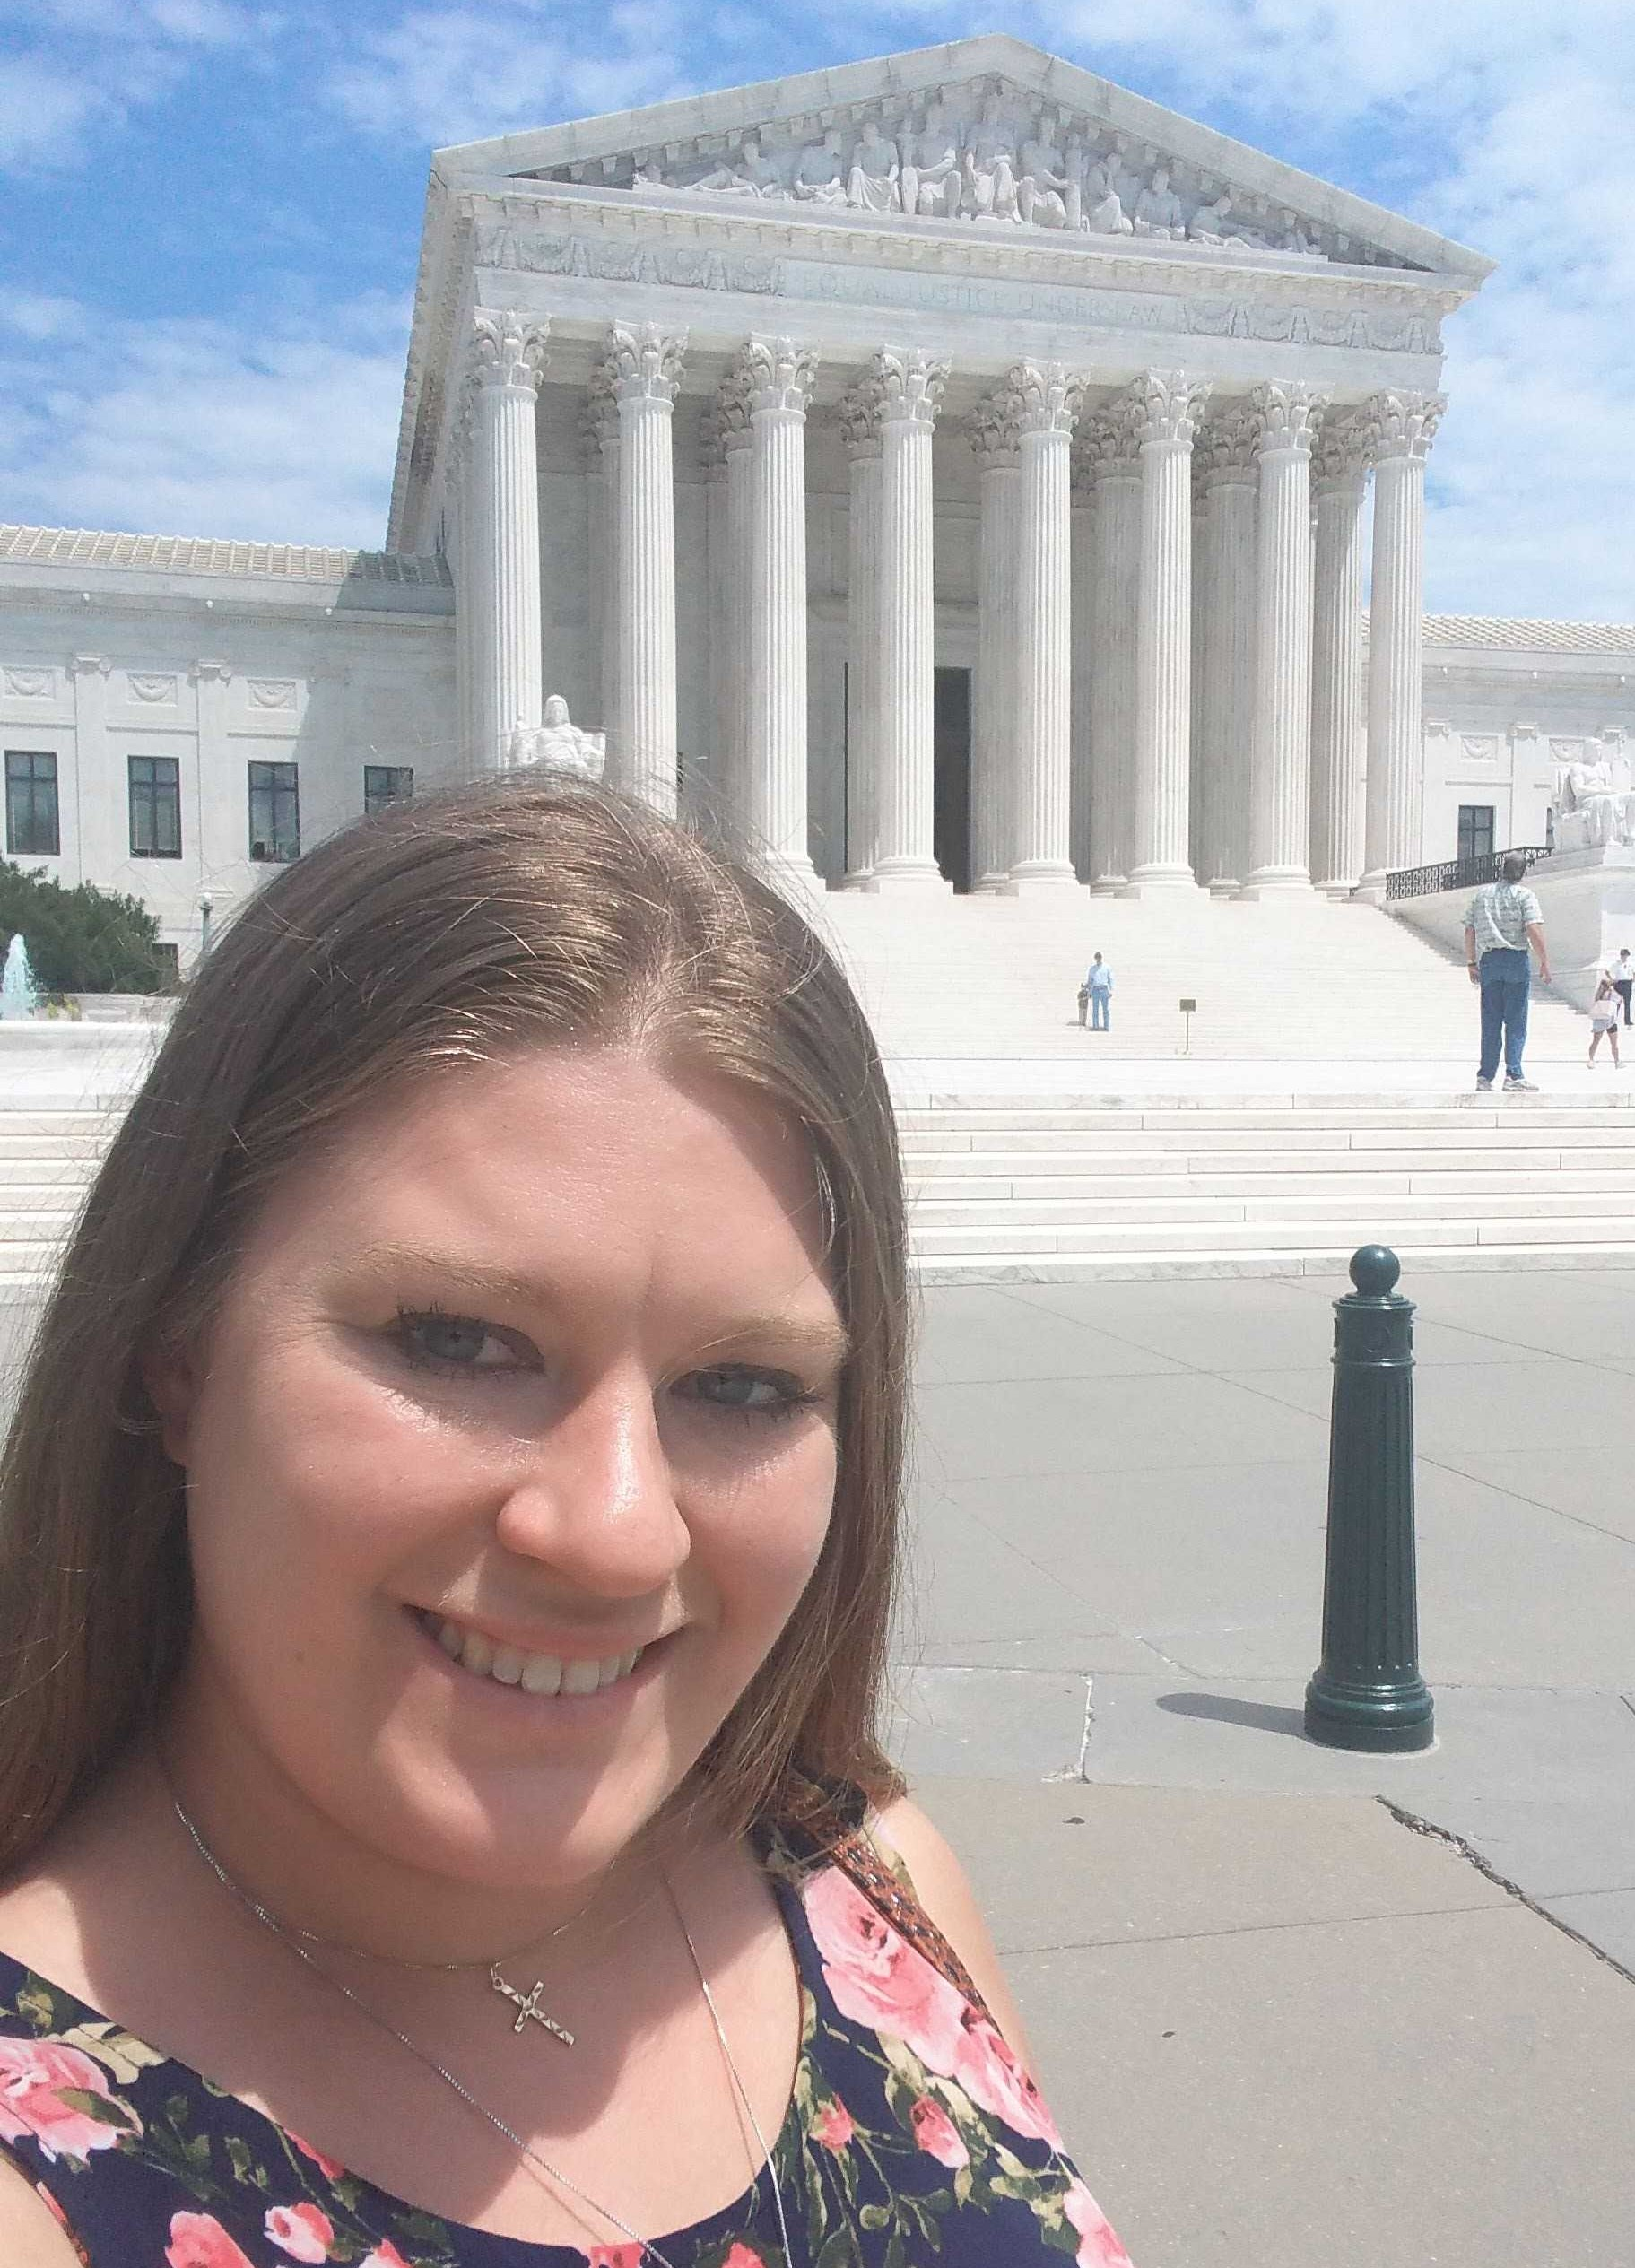 Julianne Odin stands in front of the Supreme Court Building.